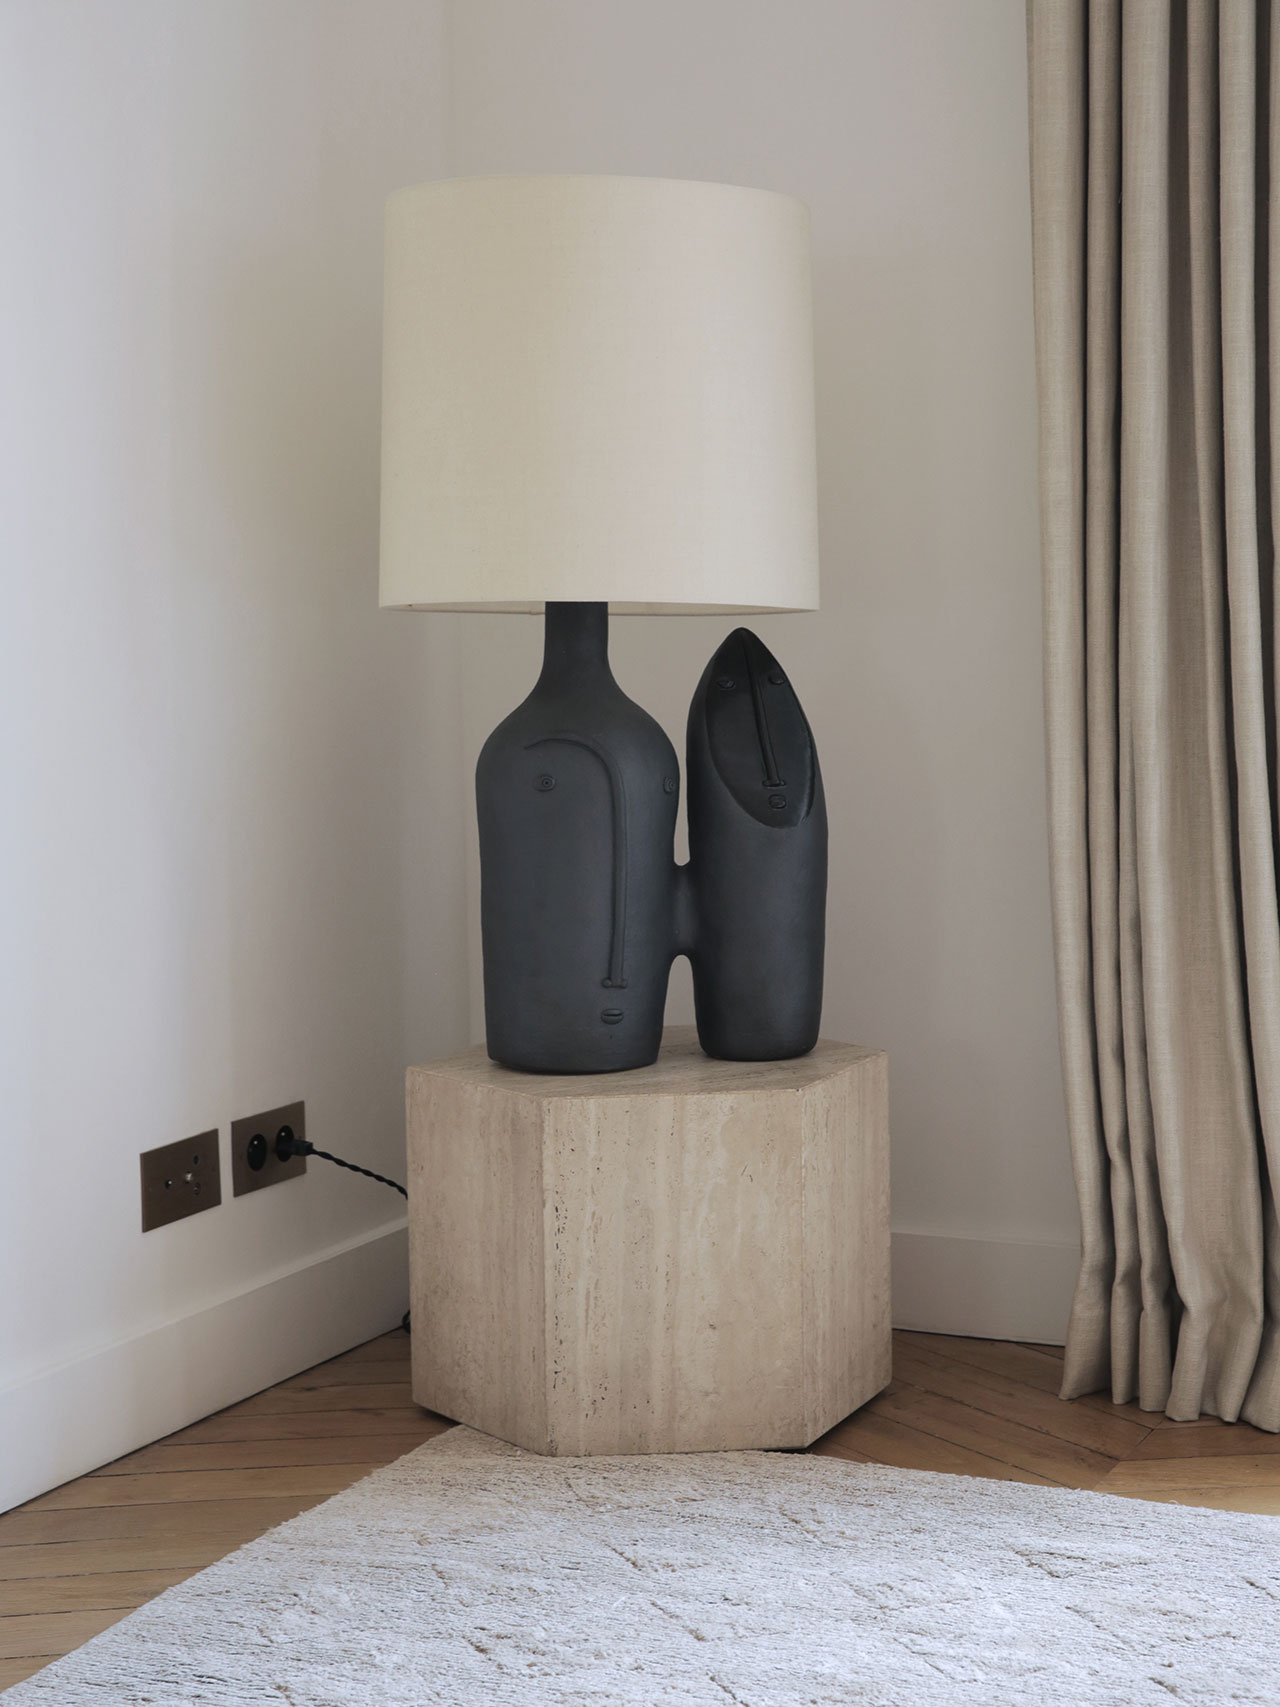 Sculptural lamp in ceramic by Les Dalo, 2014.Shade by Anne Sokolvsky. Photography by Damien de Medeiros.